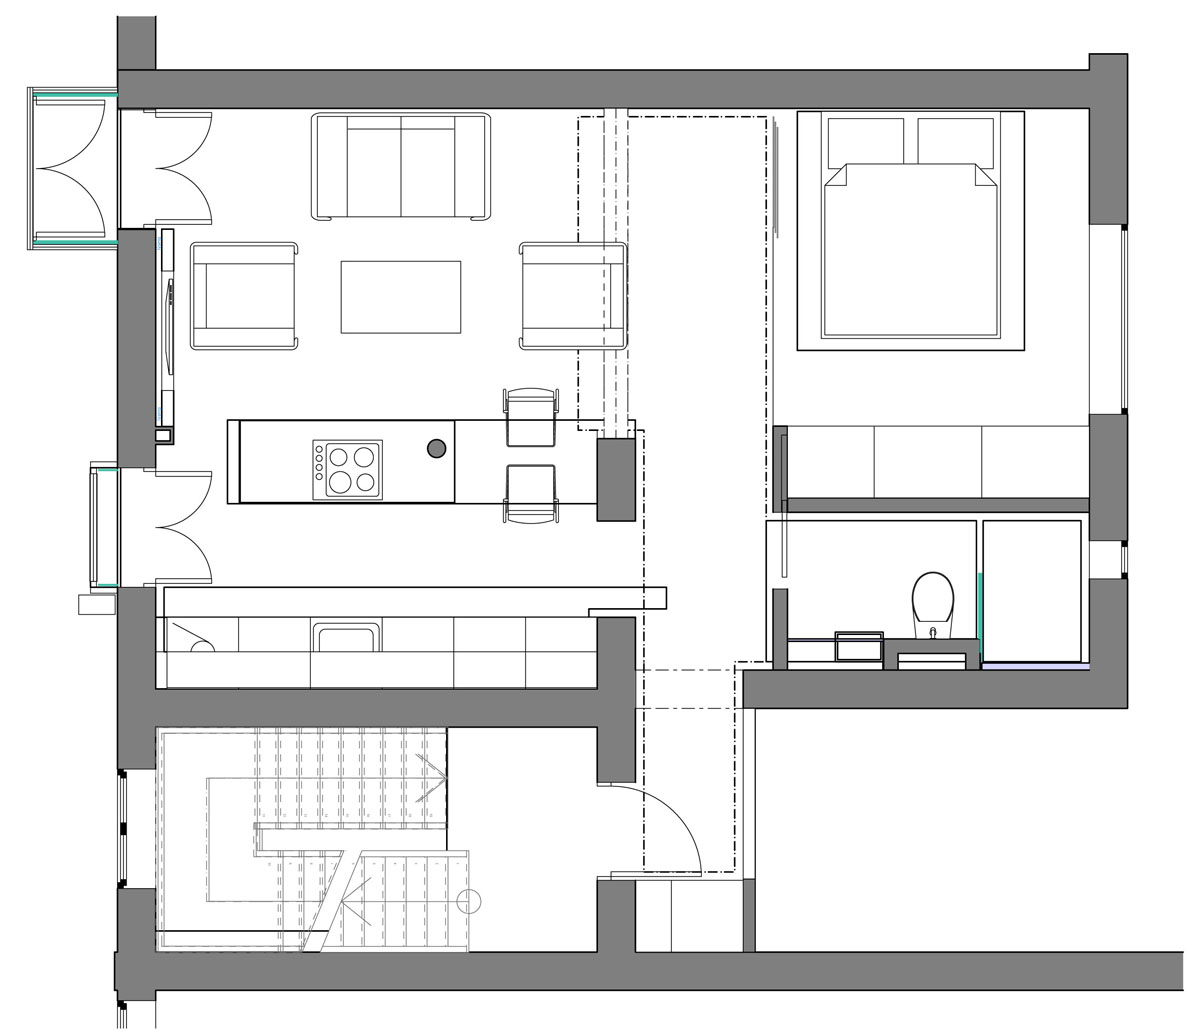 Related Posts Small Studio Apartment